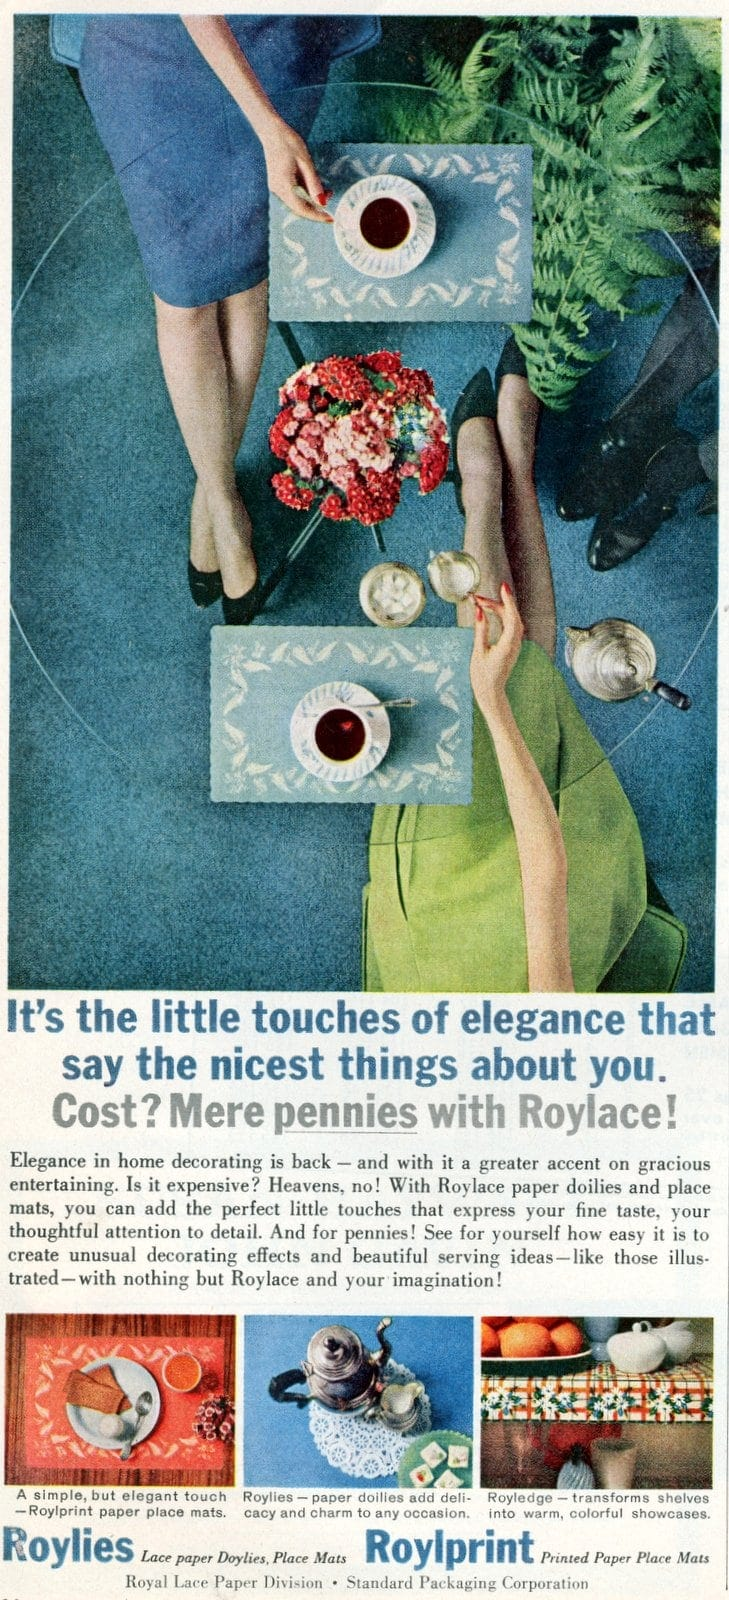 Roylace paper party products - placemats and doilies from 1961